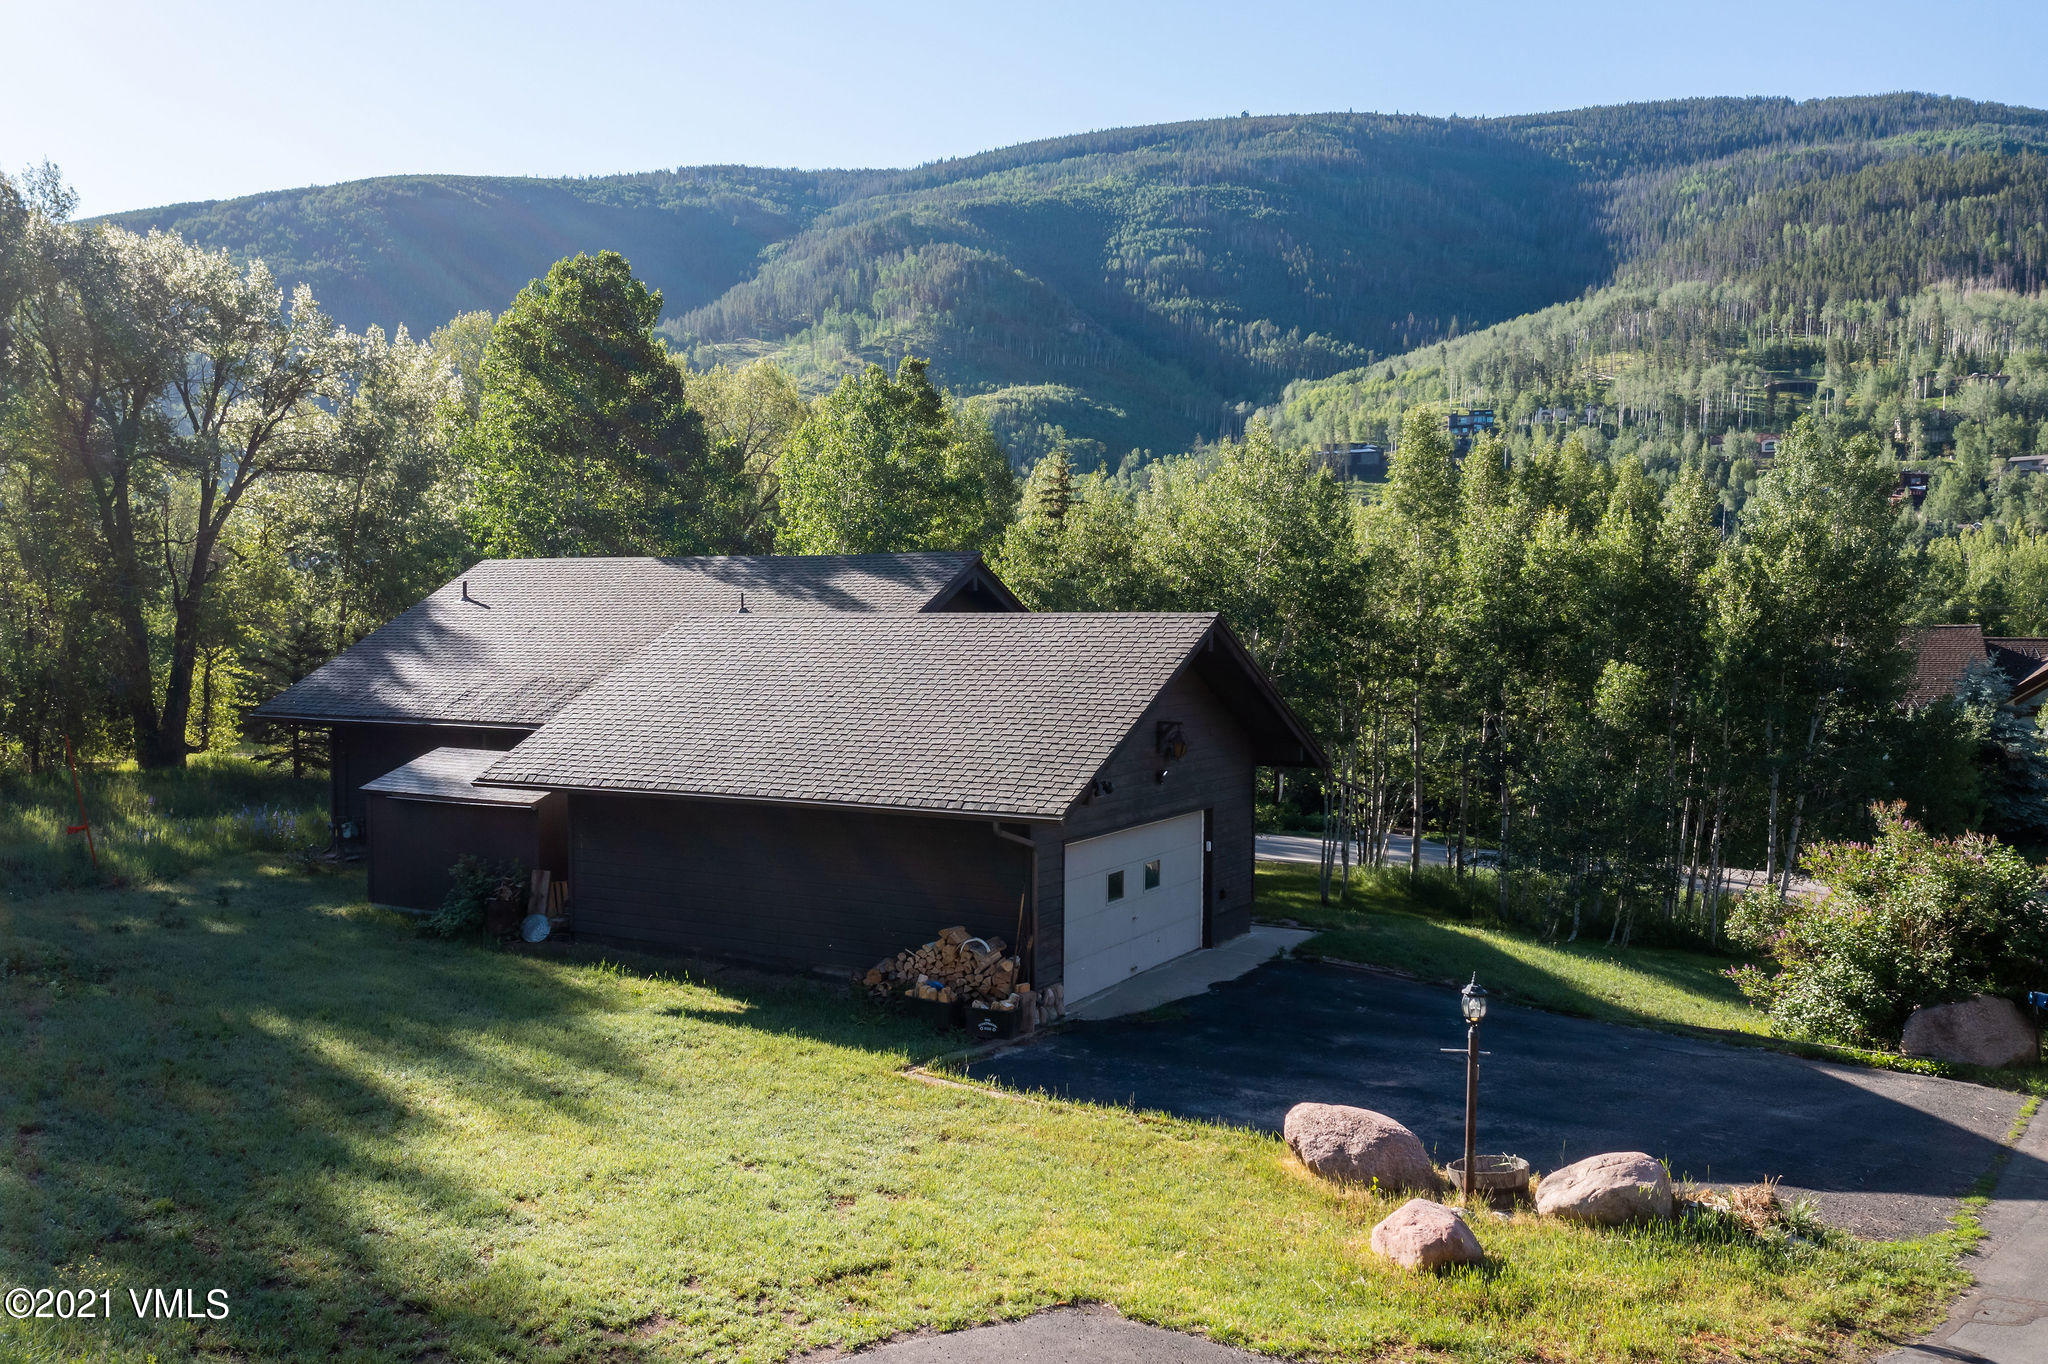 Unique opportunity to own on the coveted Circle Drive in West Vail. This property encompasses a large, flat lot of over one third acre, situated conveniently to the Town of Vail bus, Buffer Creek park and easy access to skiing, restaurants, and shopping. Enjoy great light and an open feel from this 3 bedroom, 2 bath residence, with a lower level finished lock off. The fortunate new owner can remodel or redevelop as a single family or duplex (primary/secondary). Great chance to own a beautiful property never before on the market. Transfer and conveyance of Property will be via Trustee Deed.